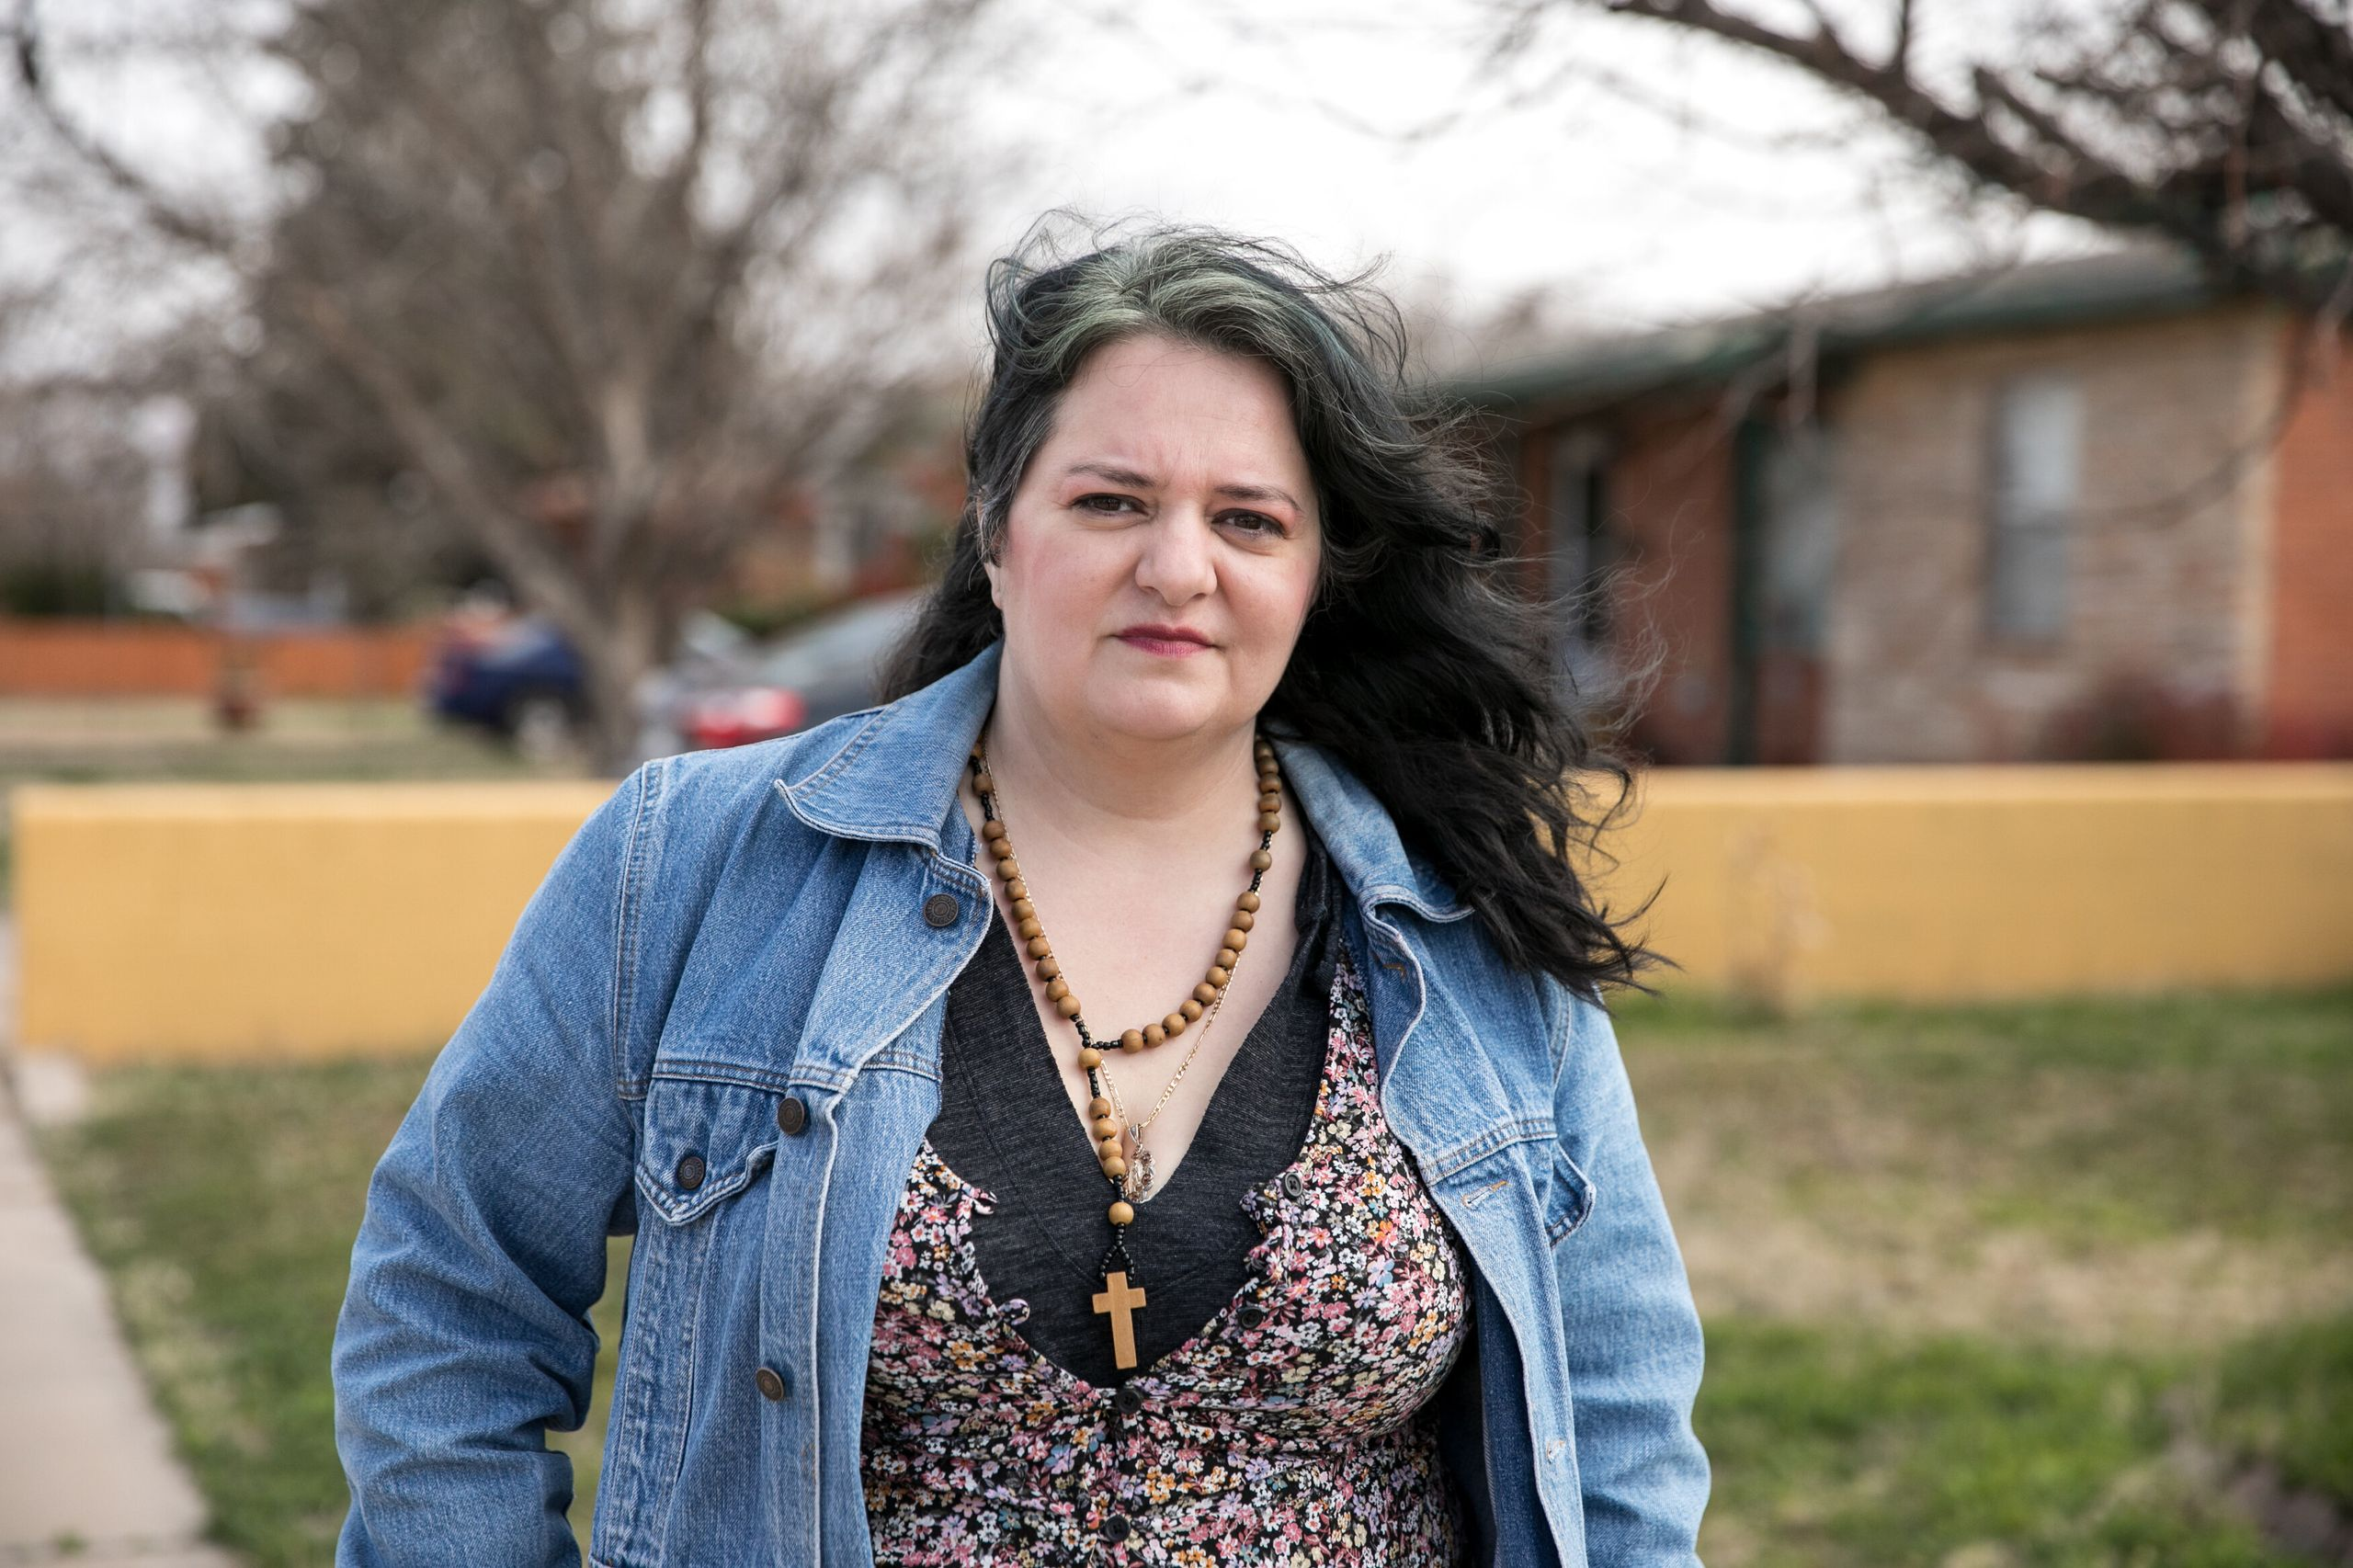 Stephanie Vela Anderson, who grew up in Big Spring, is helping to organize against Dickson's abortion bans.